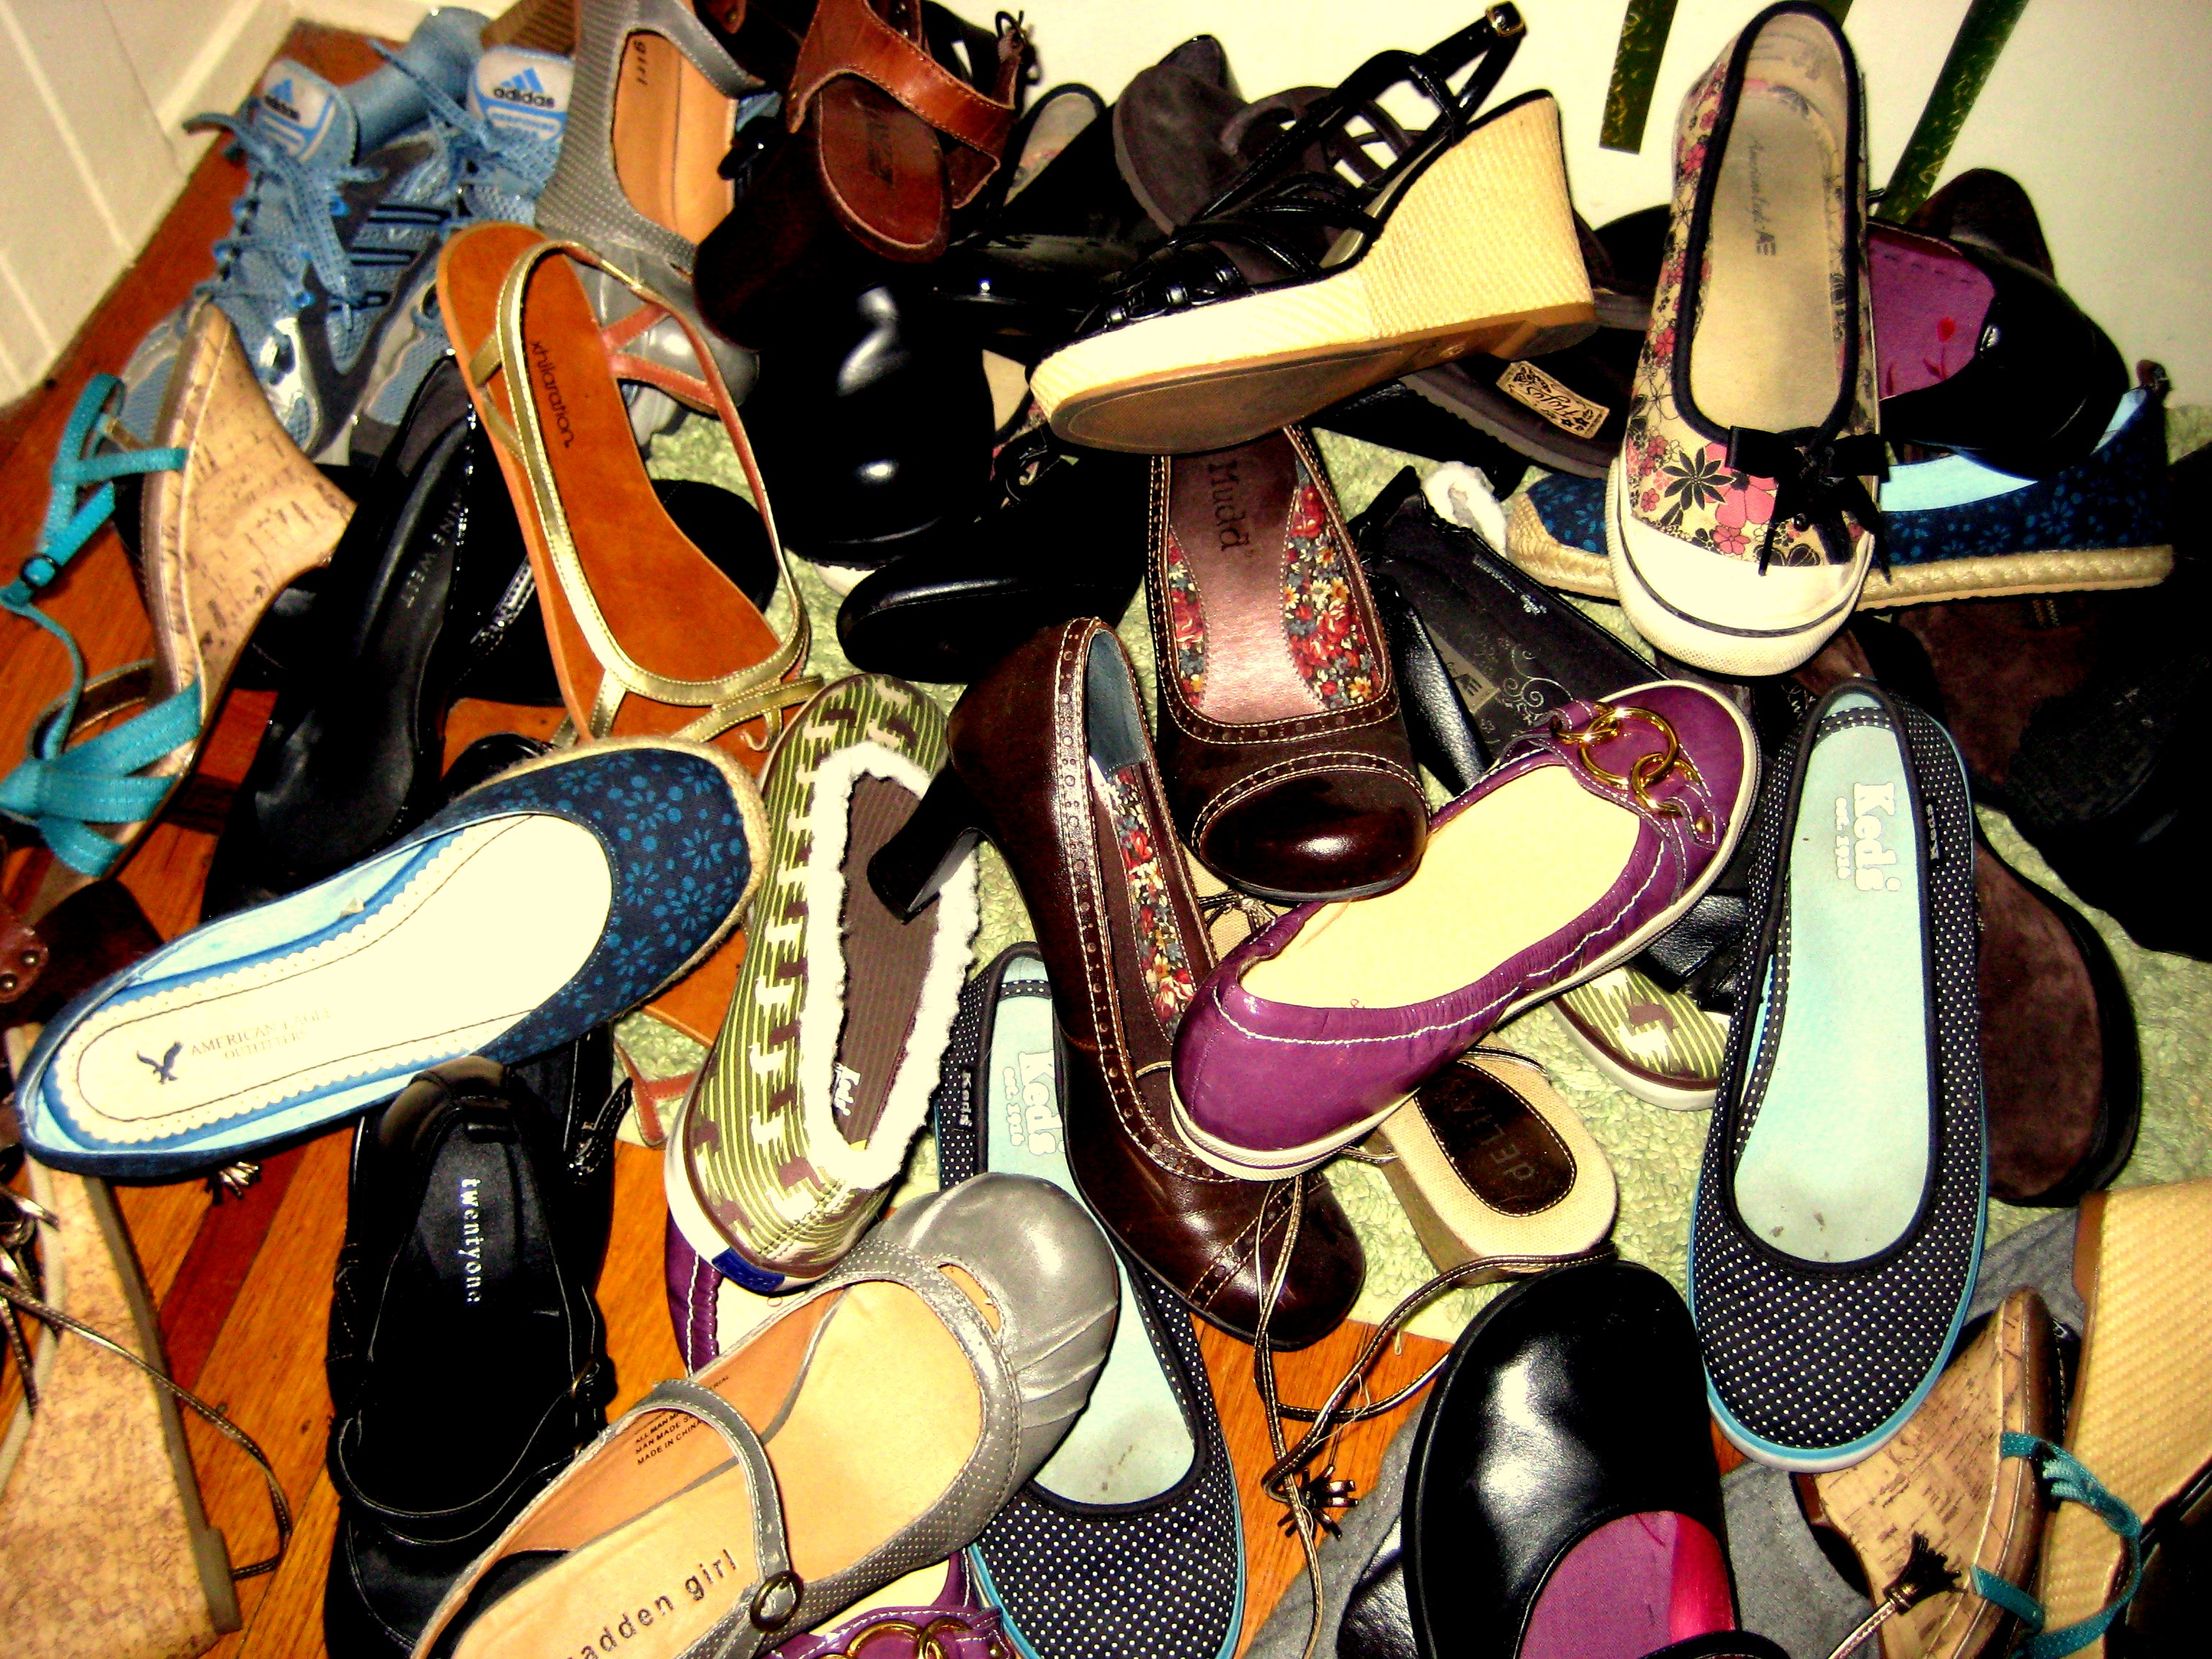 Girls Just Wanna Have.. Another Shoe Rack